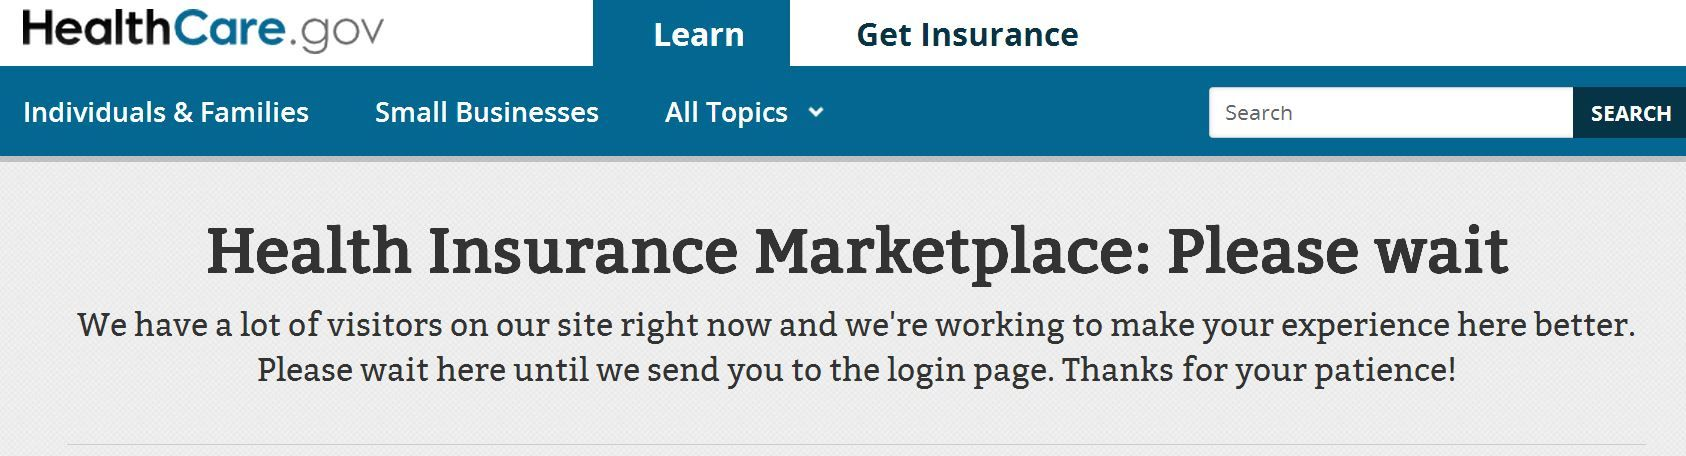 Finally ive purchased health insurance through obamacare